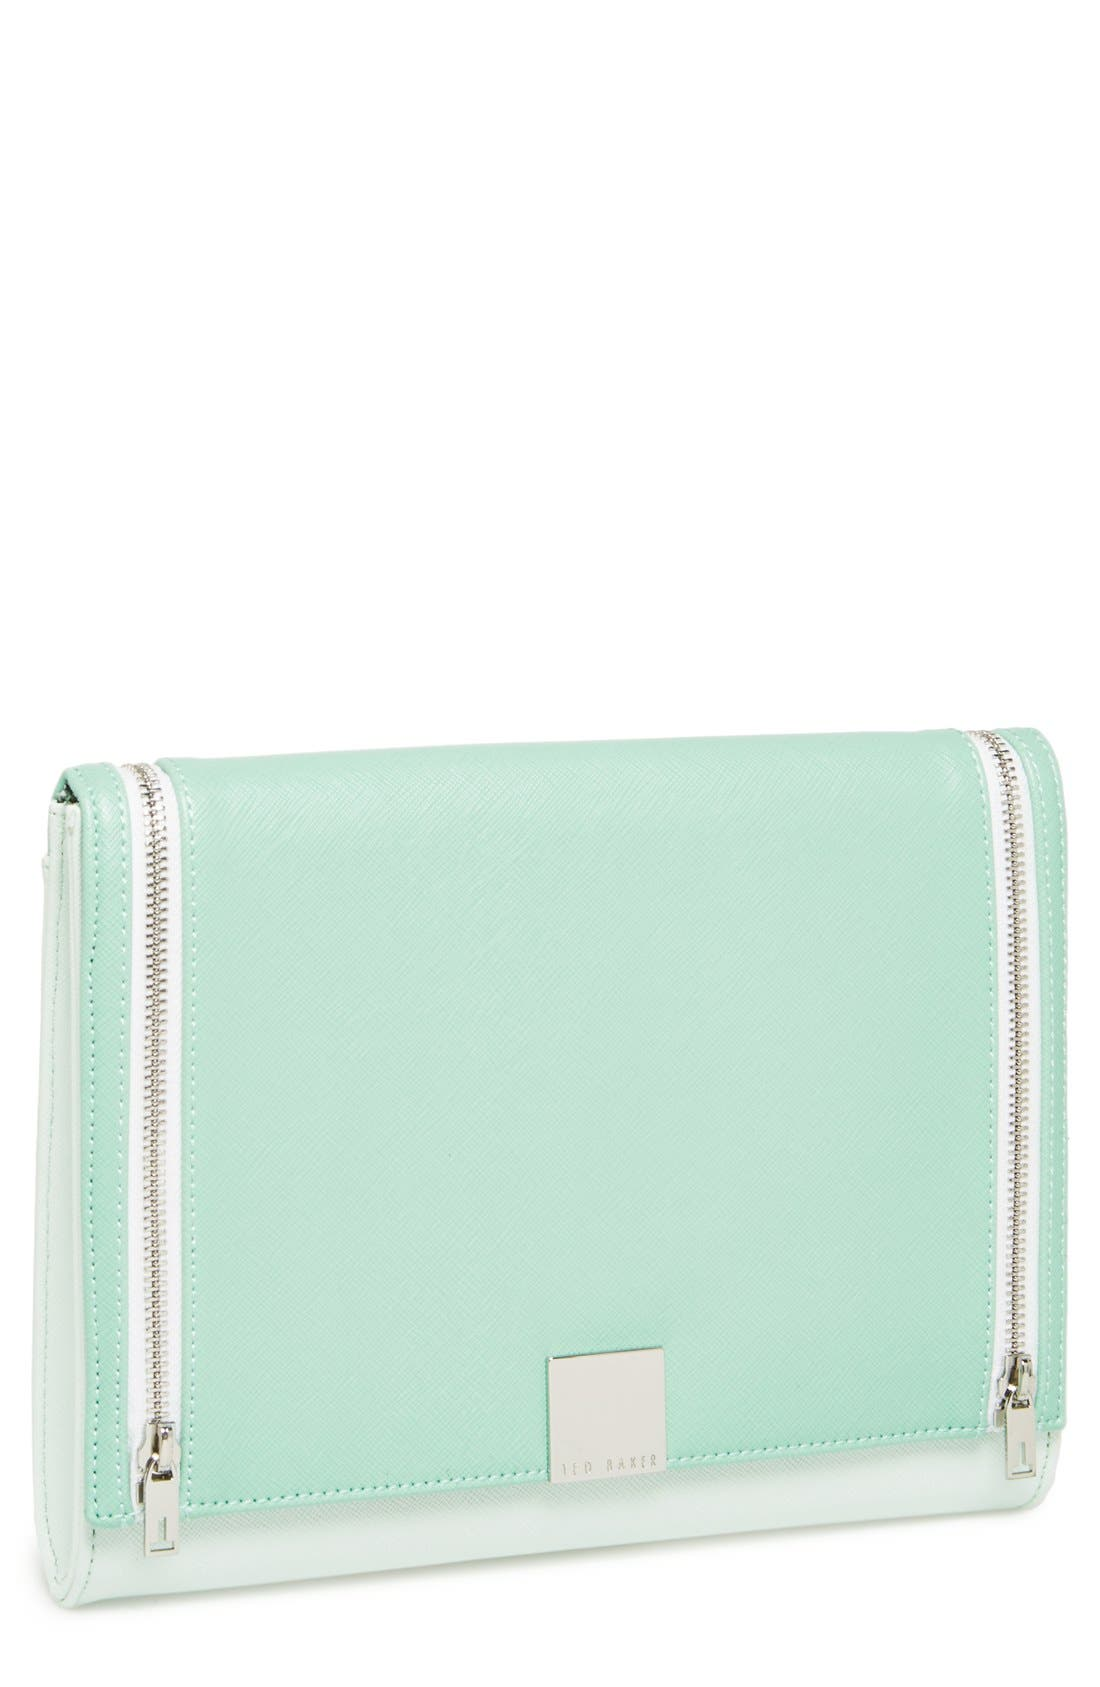 Alternate Image 1 Selected - Ted Baker London Clutch